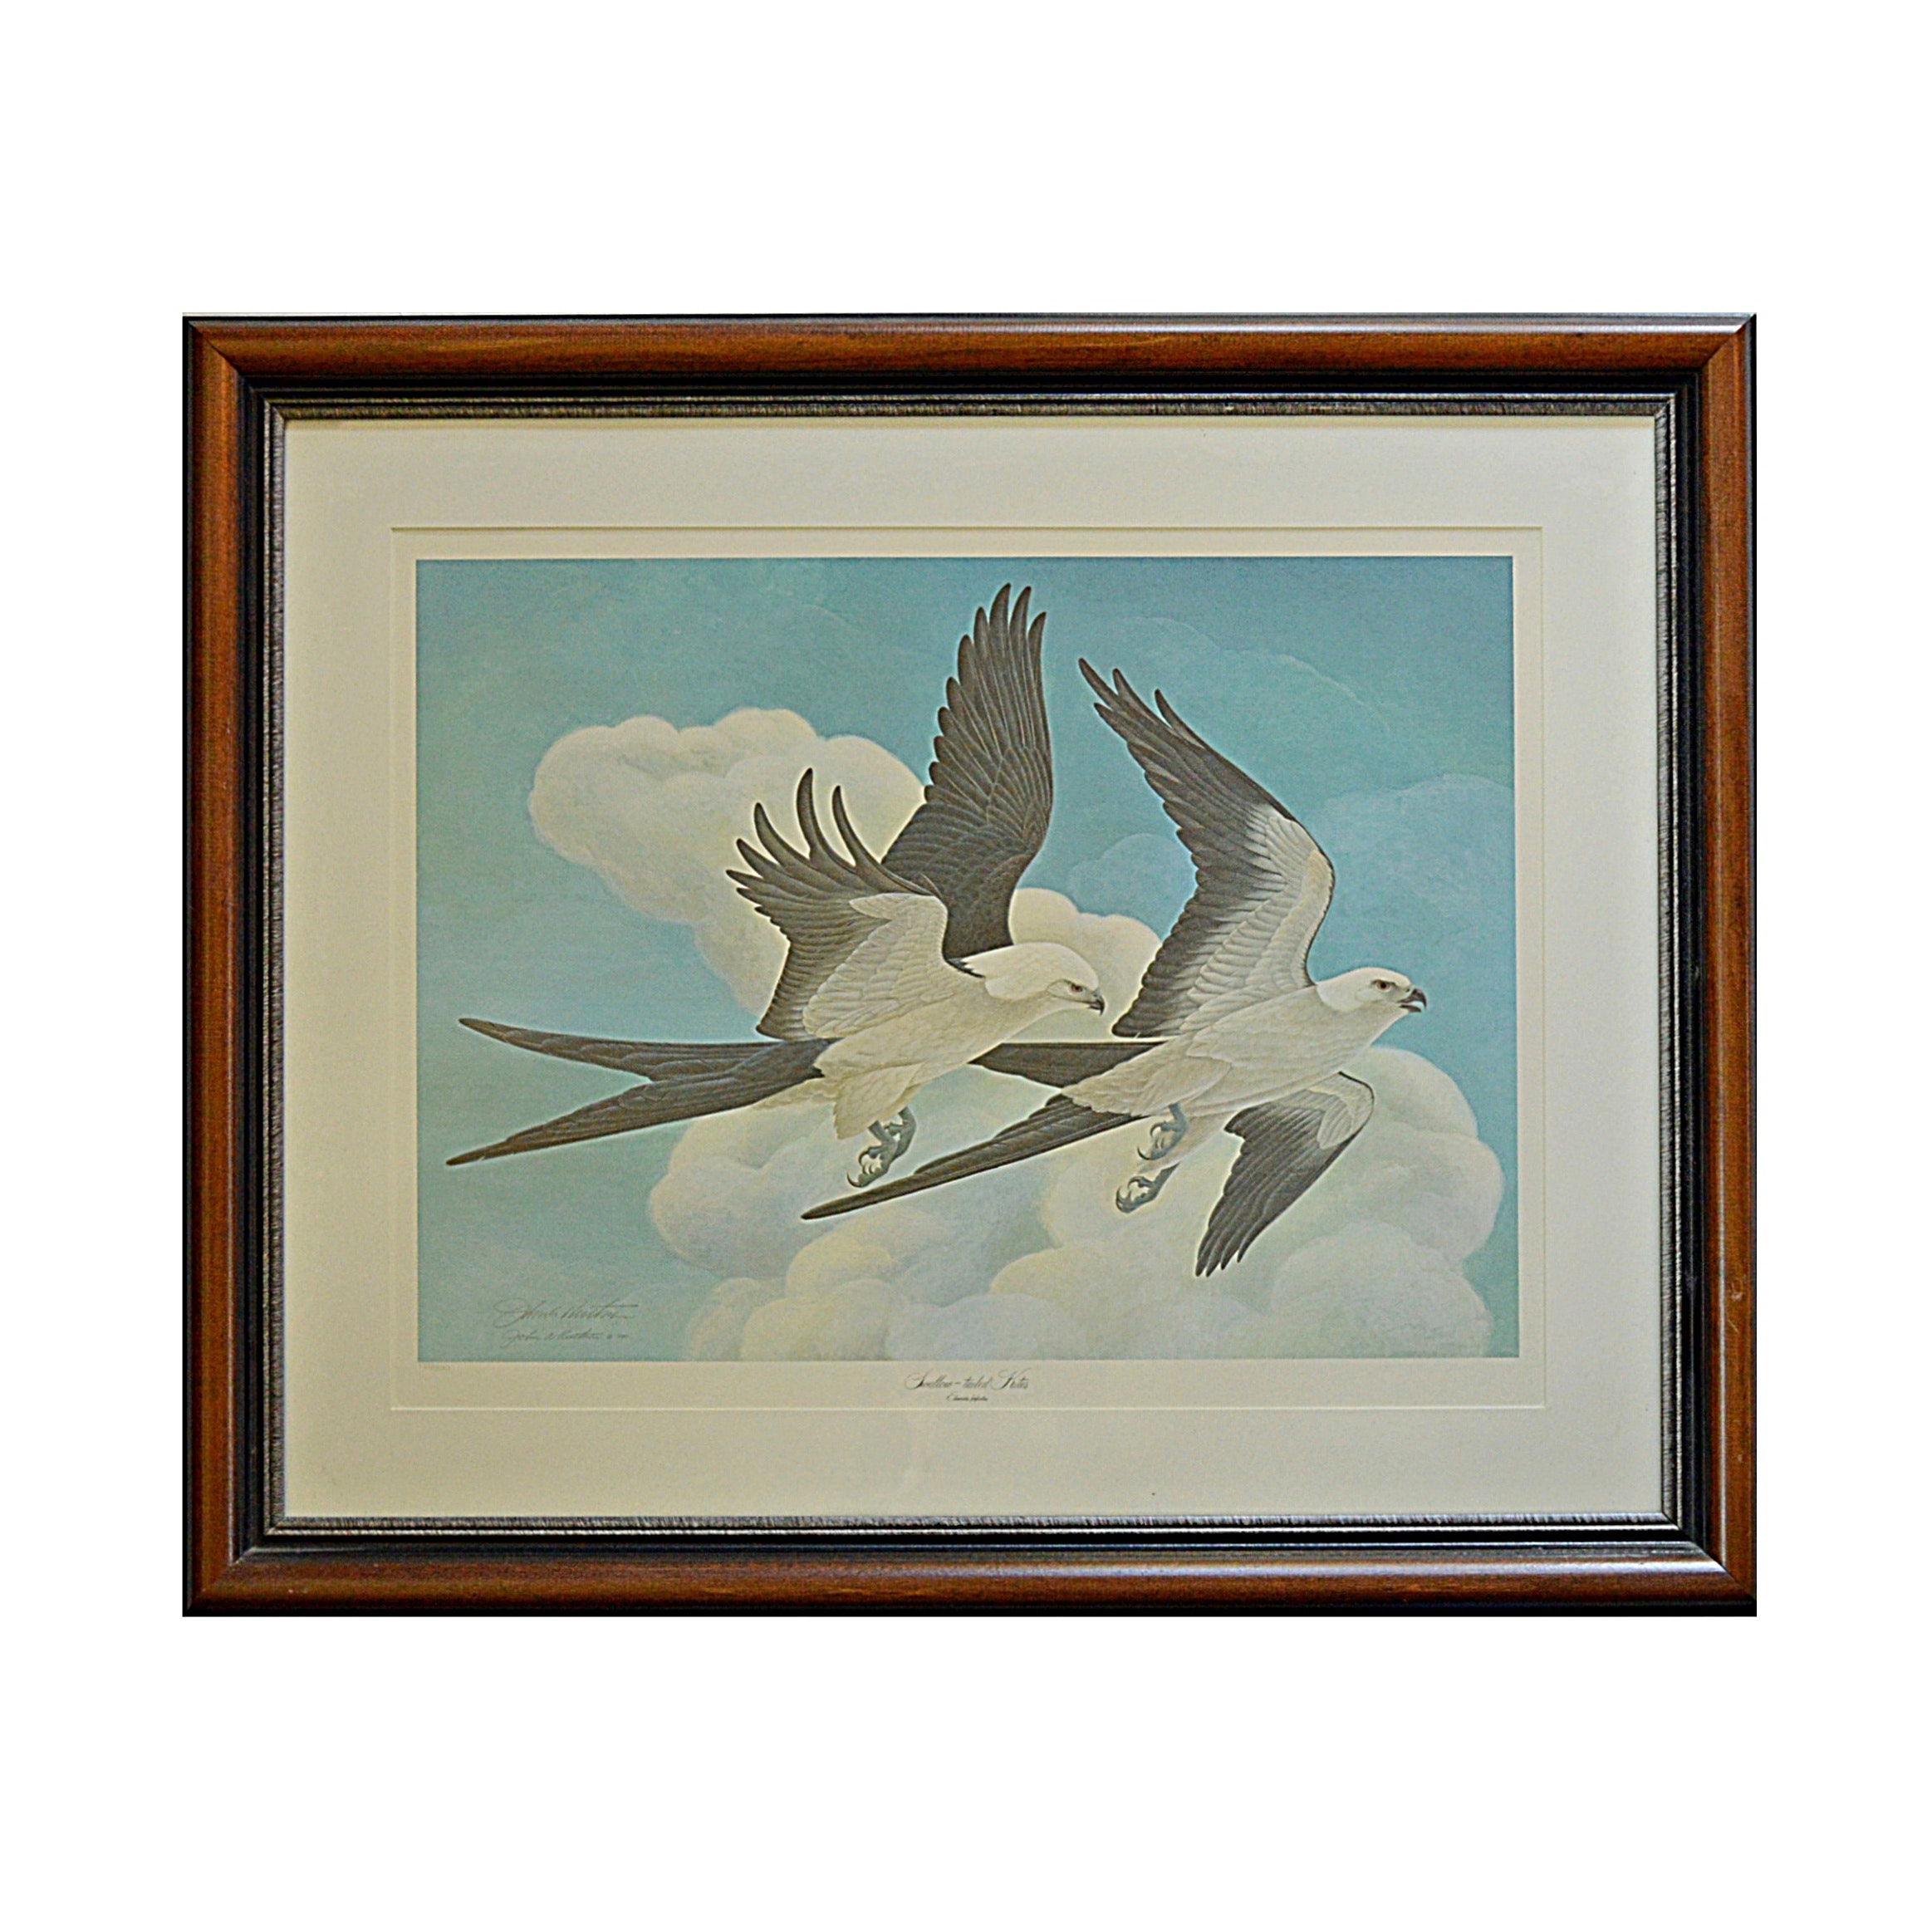 "John Ruthven Signed Limited Edition Offset Lithograph ""Swallow-tailed Kites"""